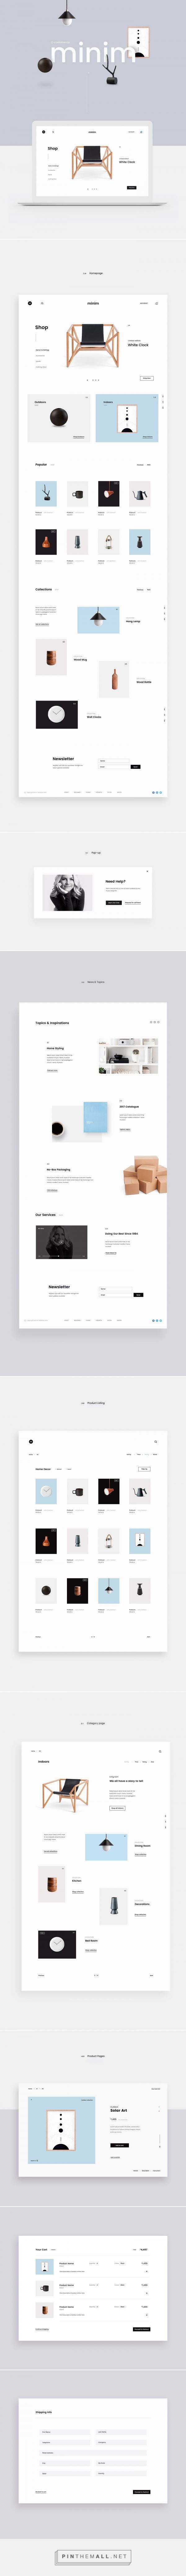 Minim E-commerce Website / Web Design / Interaction / UI Design / UX Design / E-Commerce / Furniture / Interior Design / E-Shop / Minimalist / Minimal / Inspiration / Ideas / Layout / Trend / Interior / Business / Beautiful / Modern / Clean / Navigation / White Space